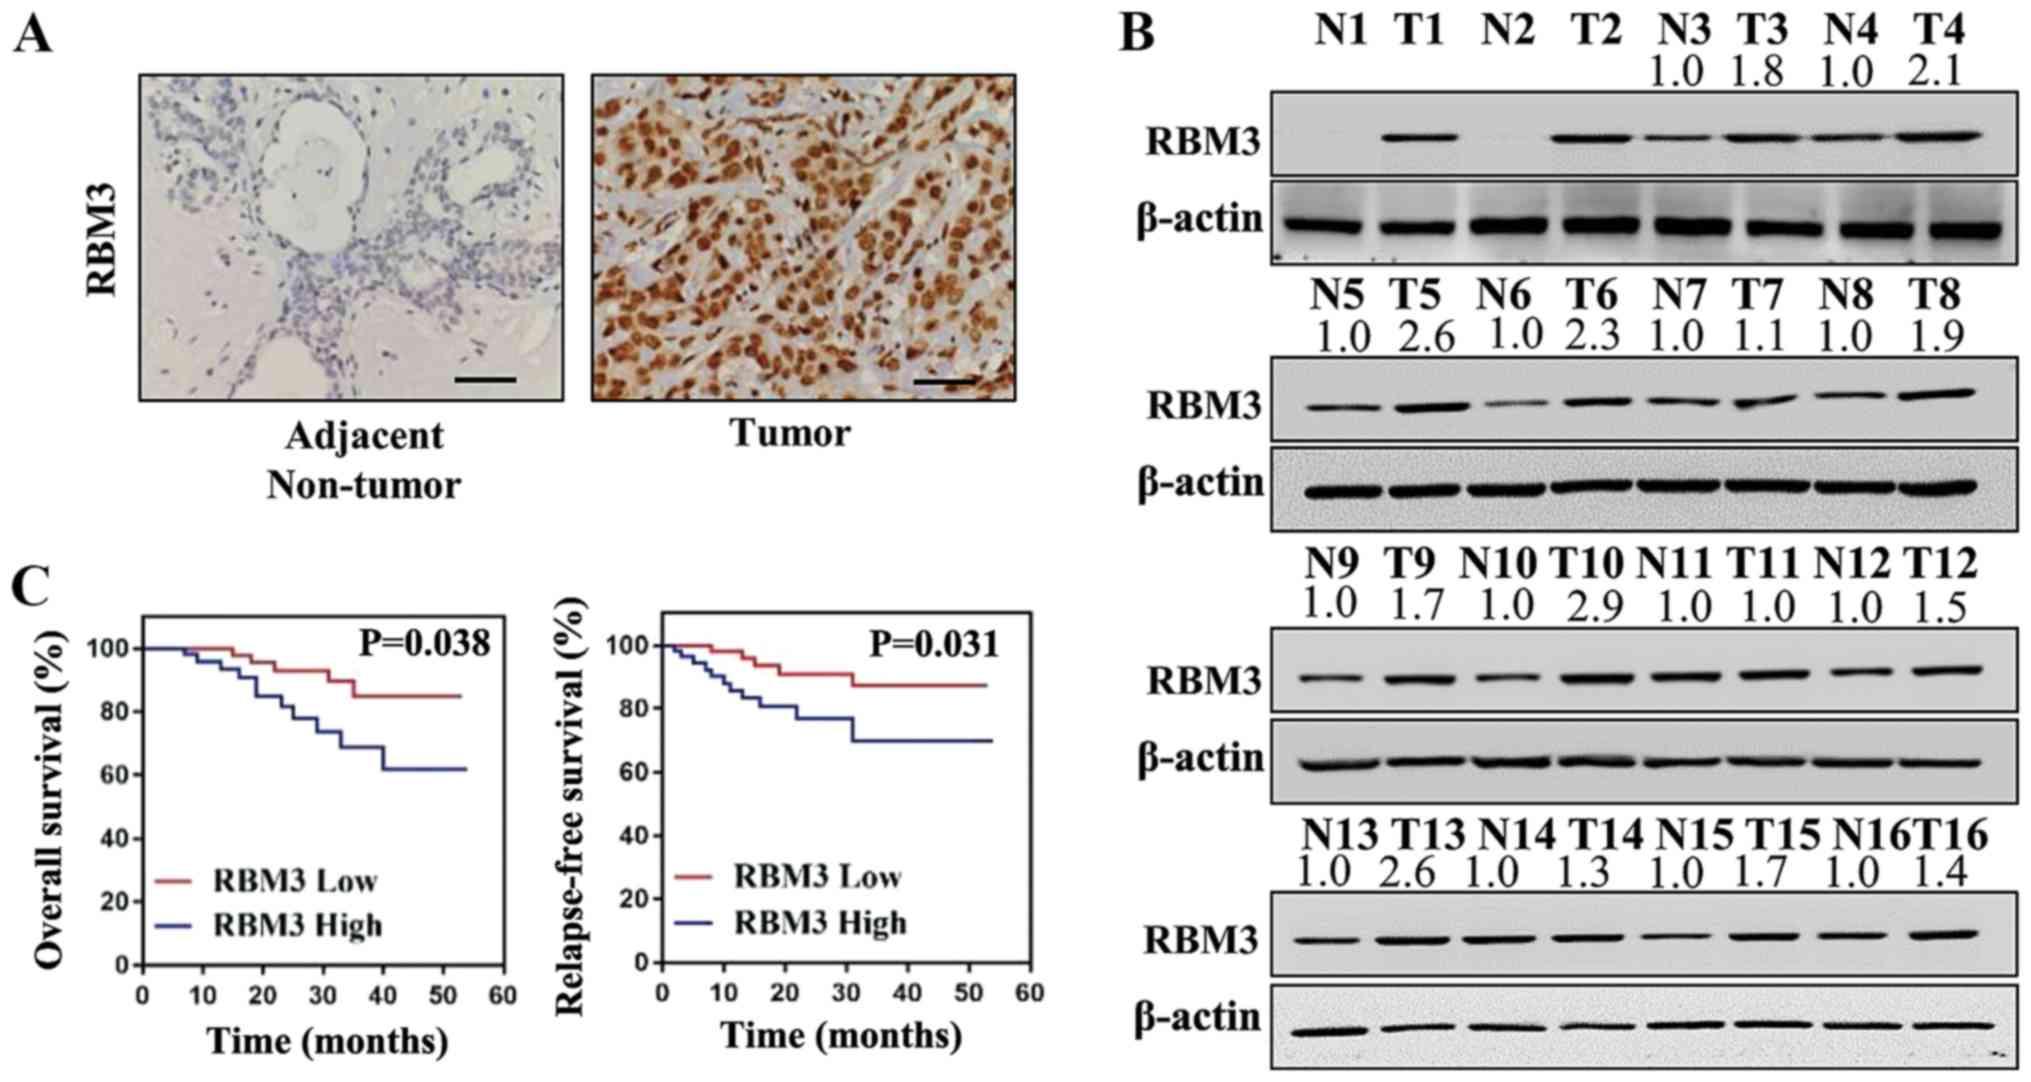 RBM3 upregulates ARPC2 by binding the 3'UTR and contributes